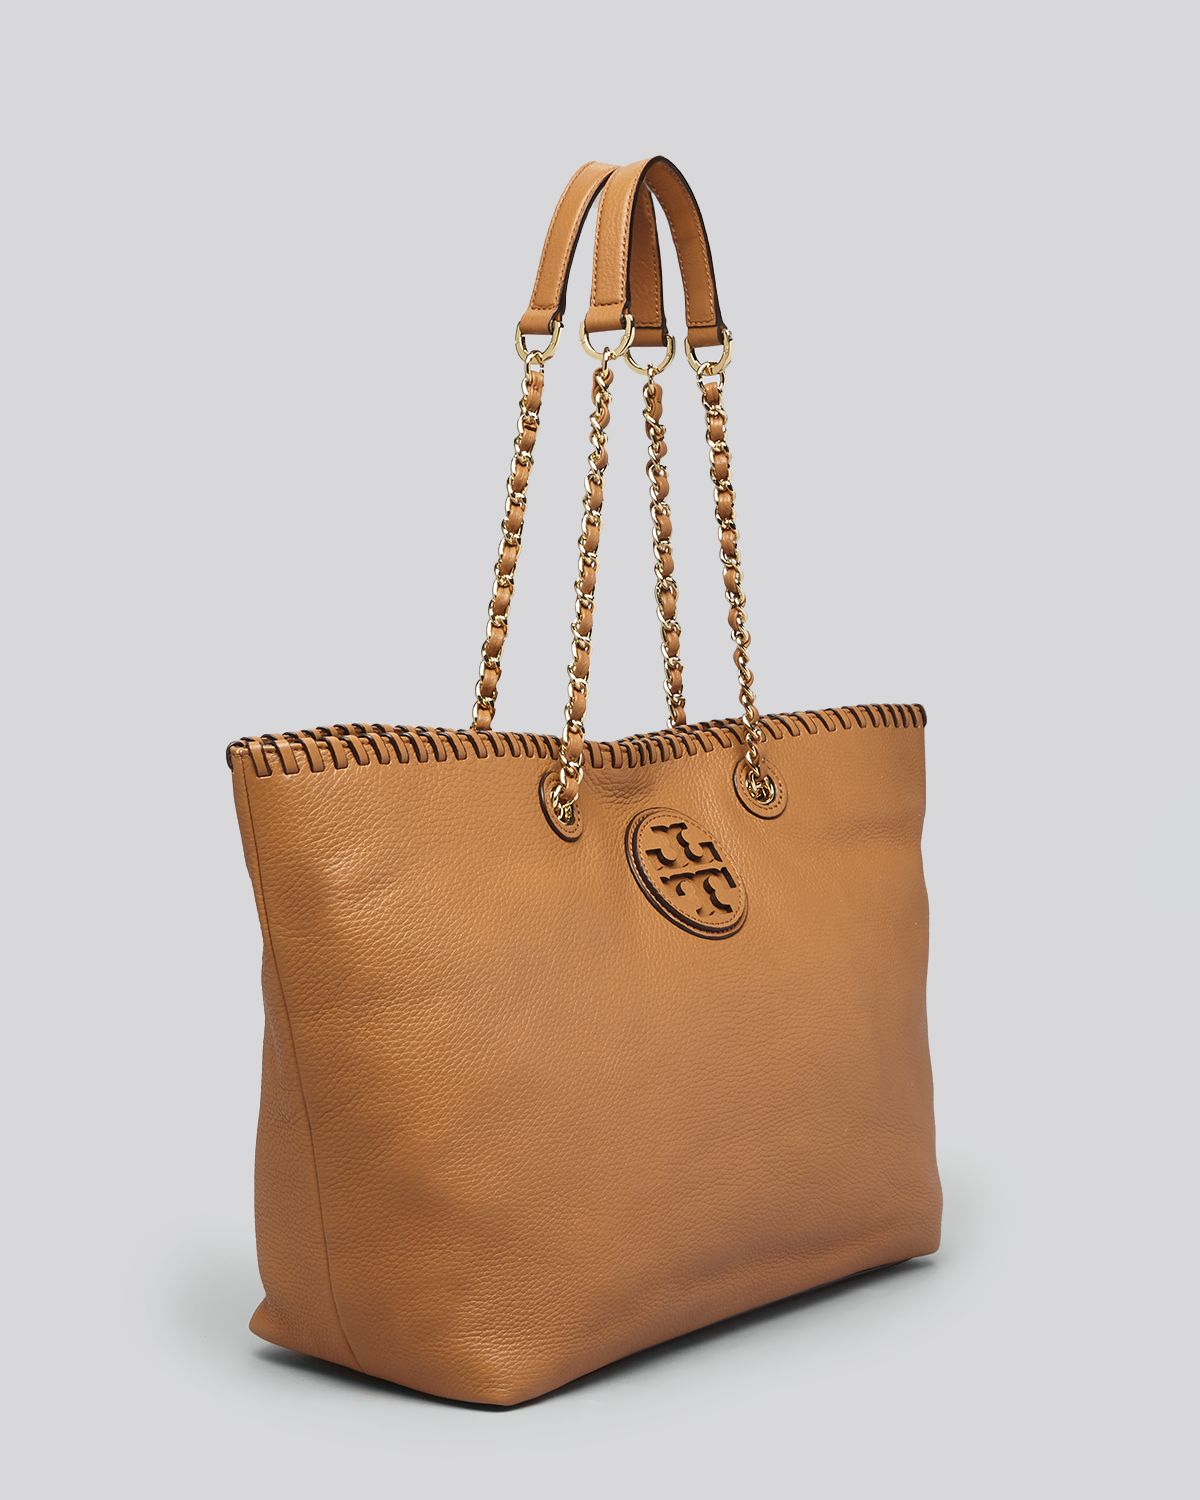 Lyst - Tory Burch Tote Marion Small East West in Brown 92f39ee6e2